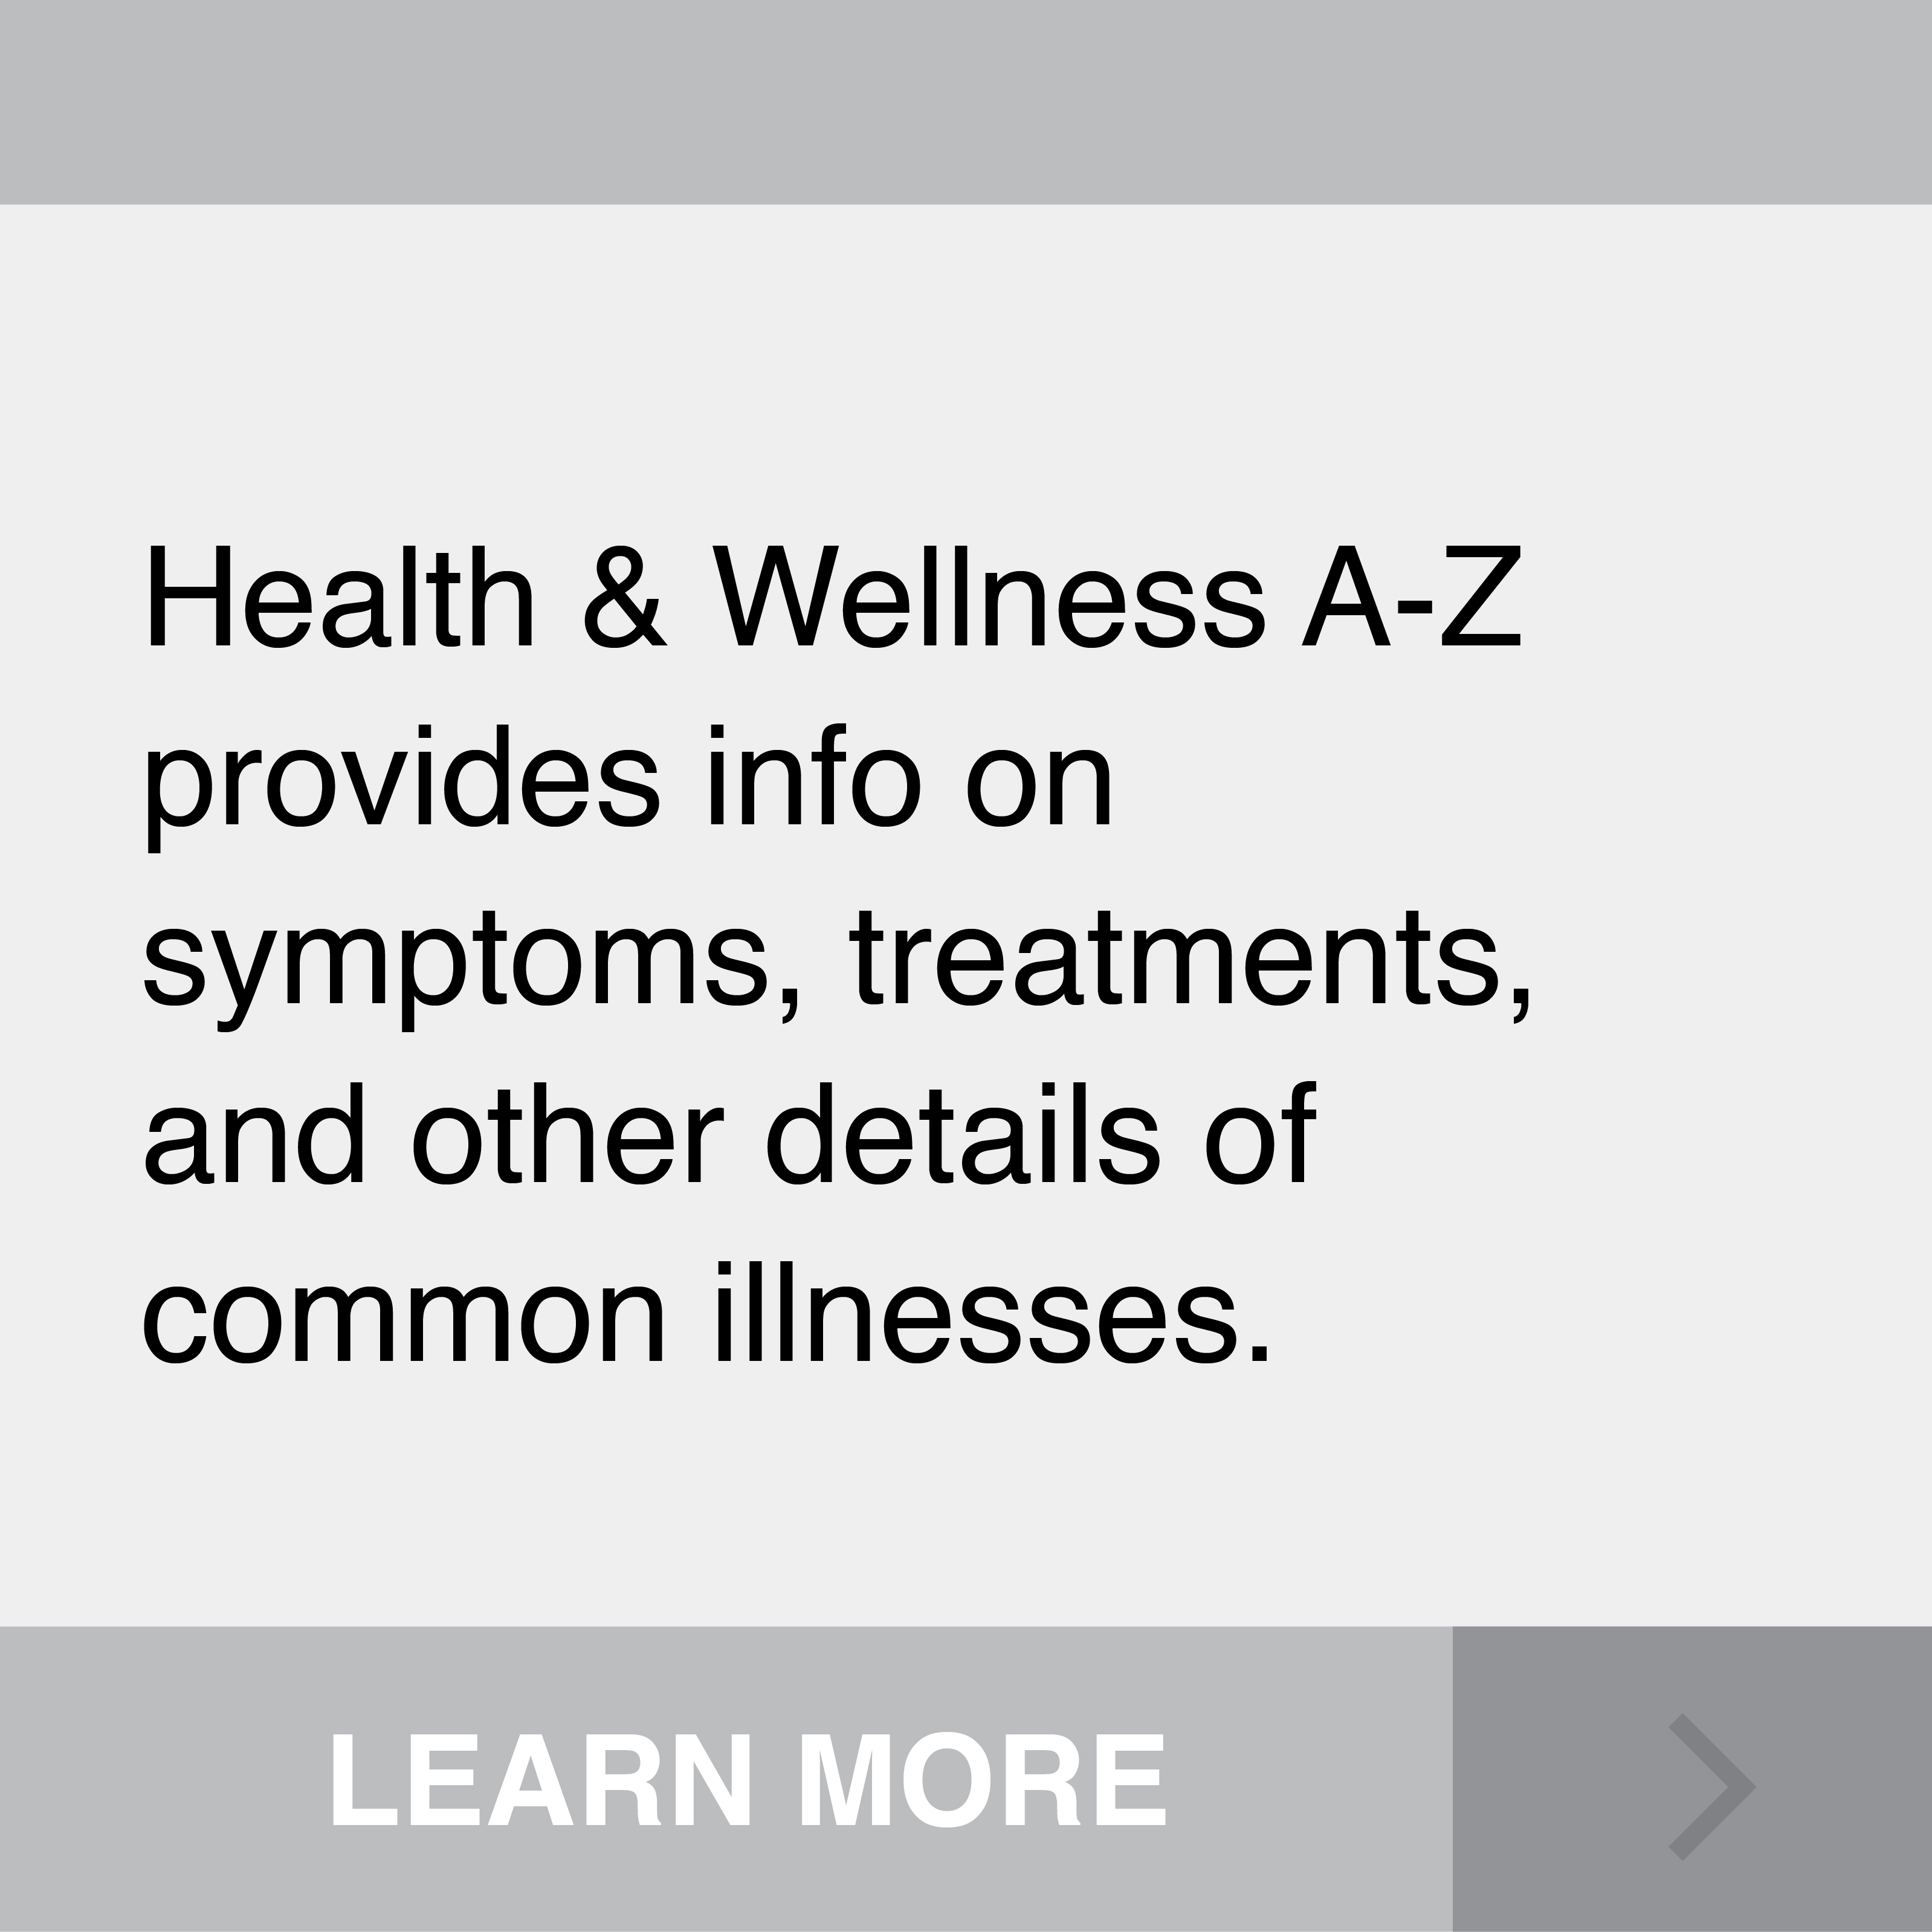 Health & Wellness A-Z provides info on symptons, treatments, and other details of common illnesses. Click to Learn More.